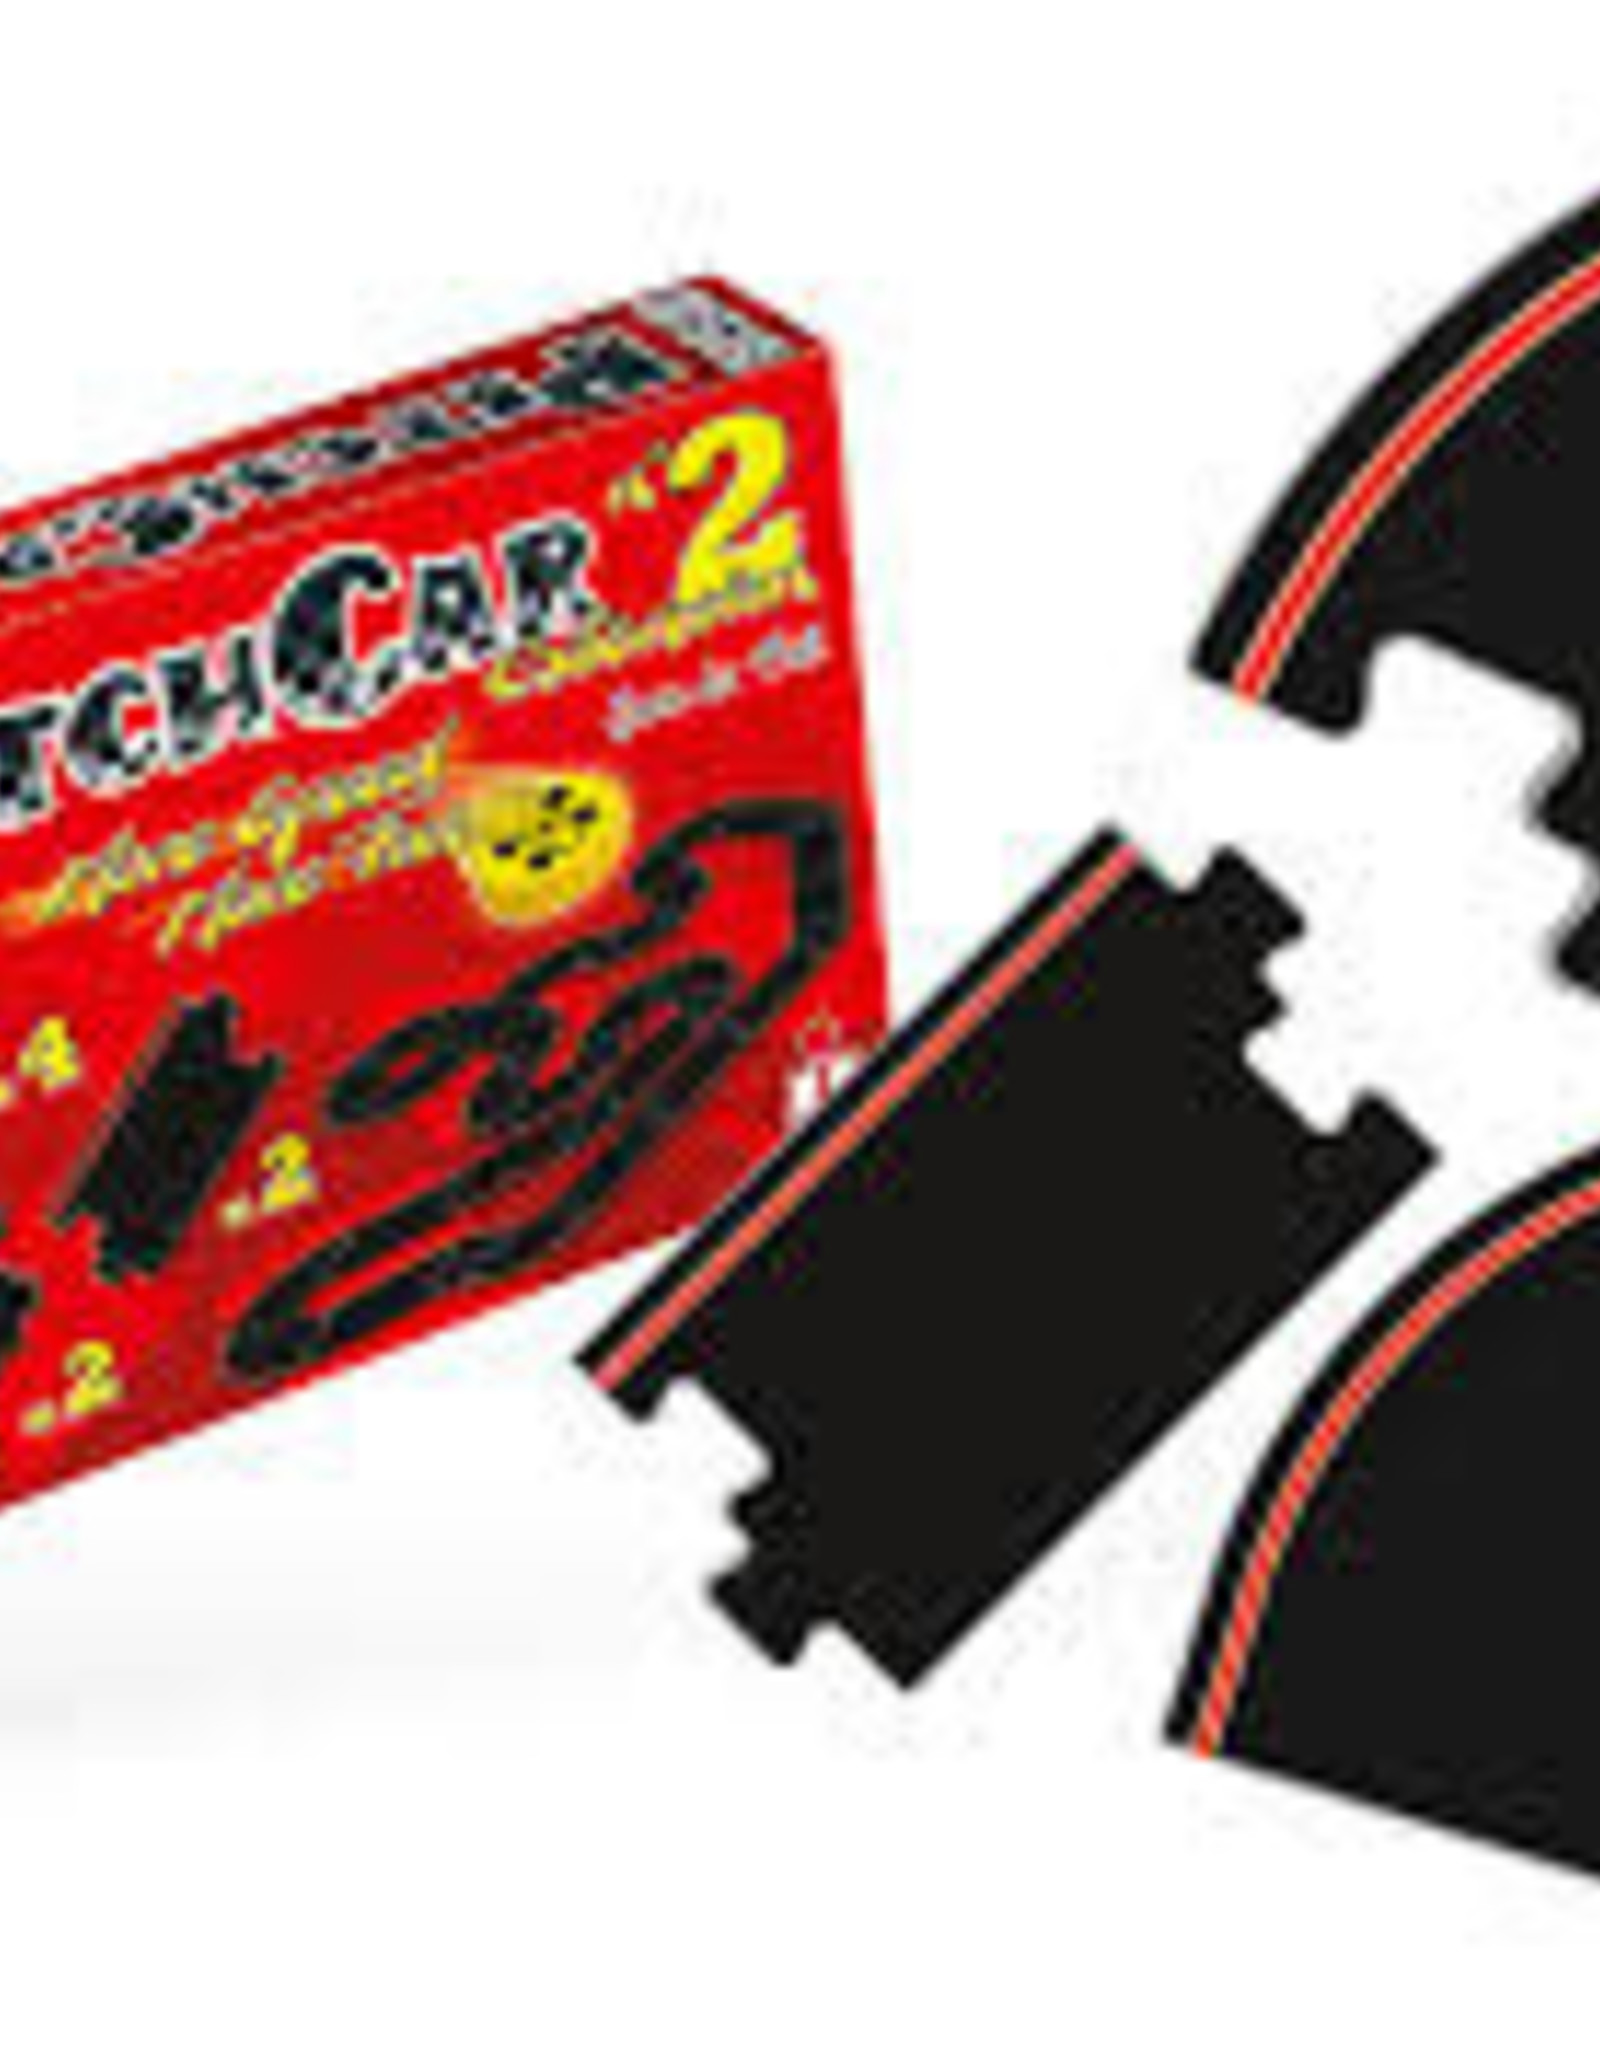 Ferti Games PitchCar Extension #2 - More Speed More Fun